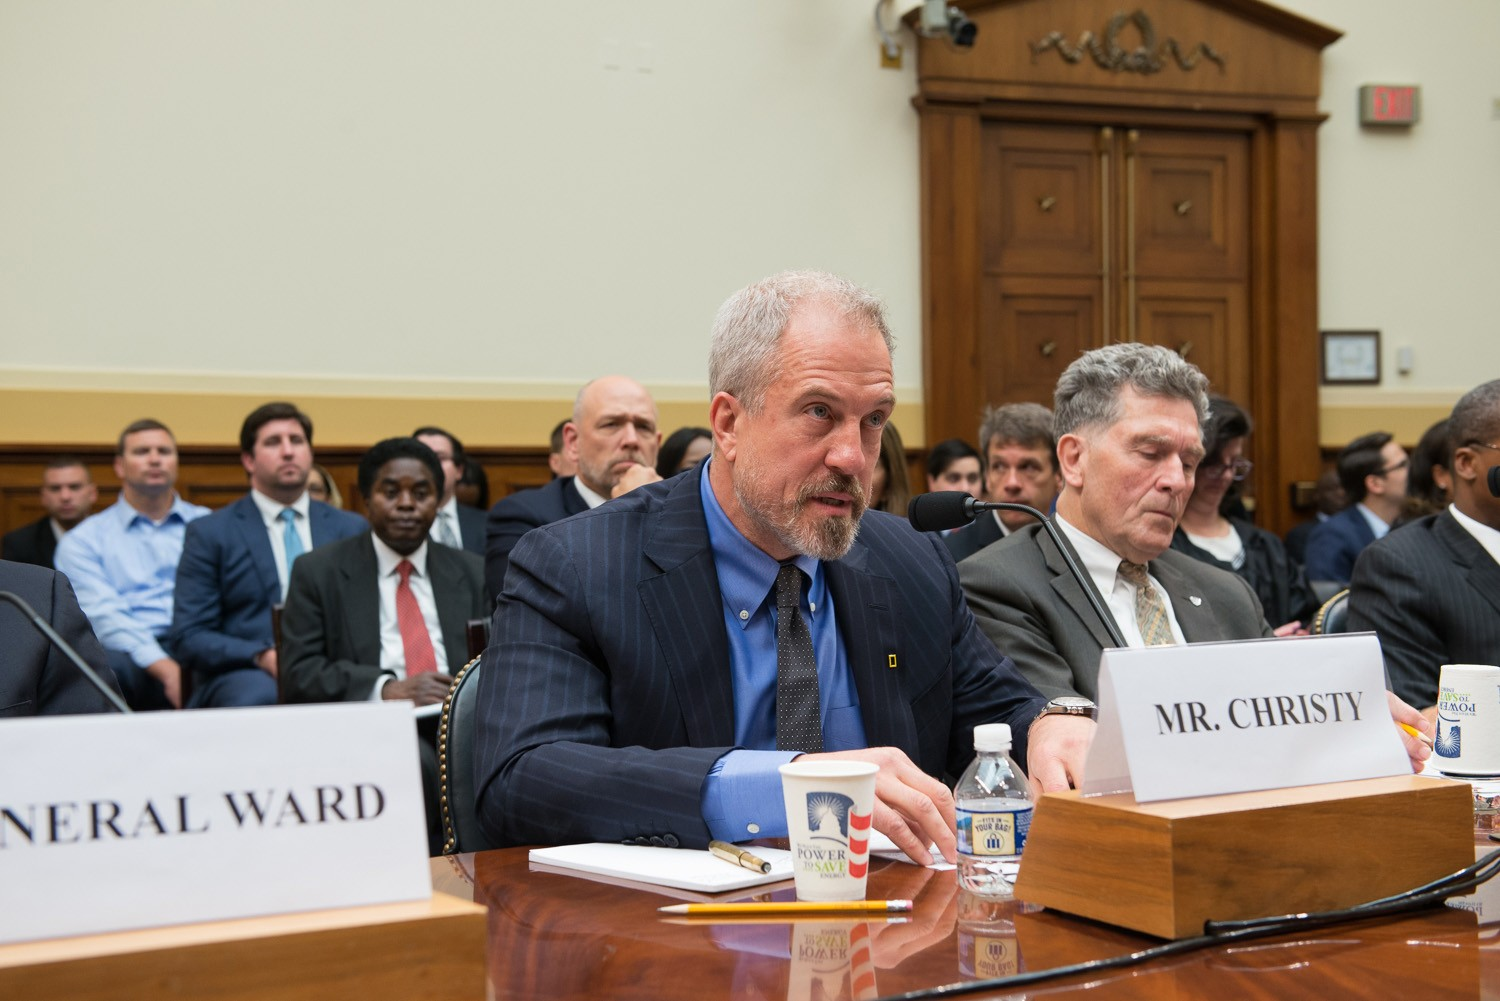 Explorer & Journalist Bryan Christy Testifies Before United States House Committee